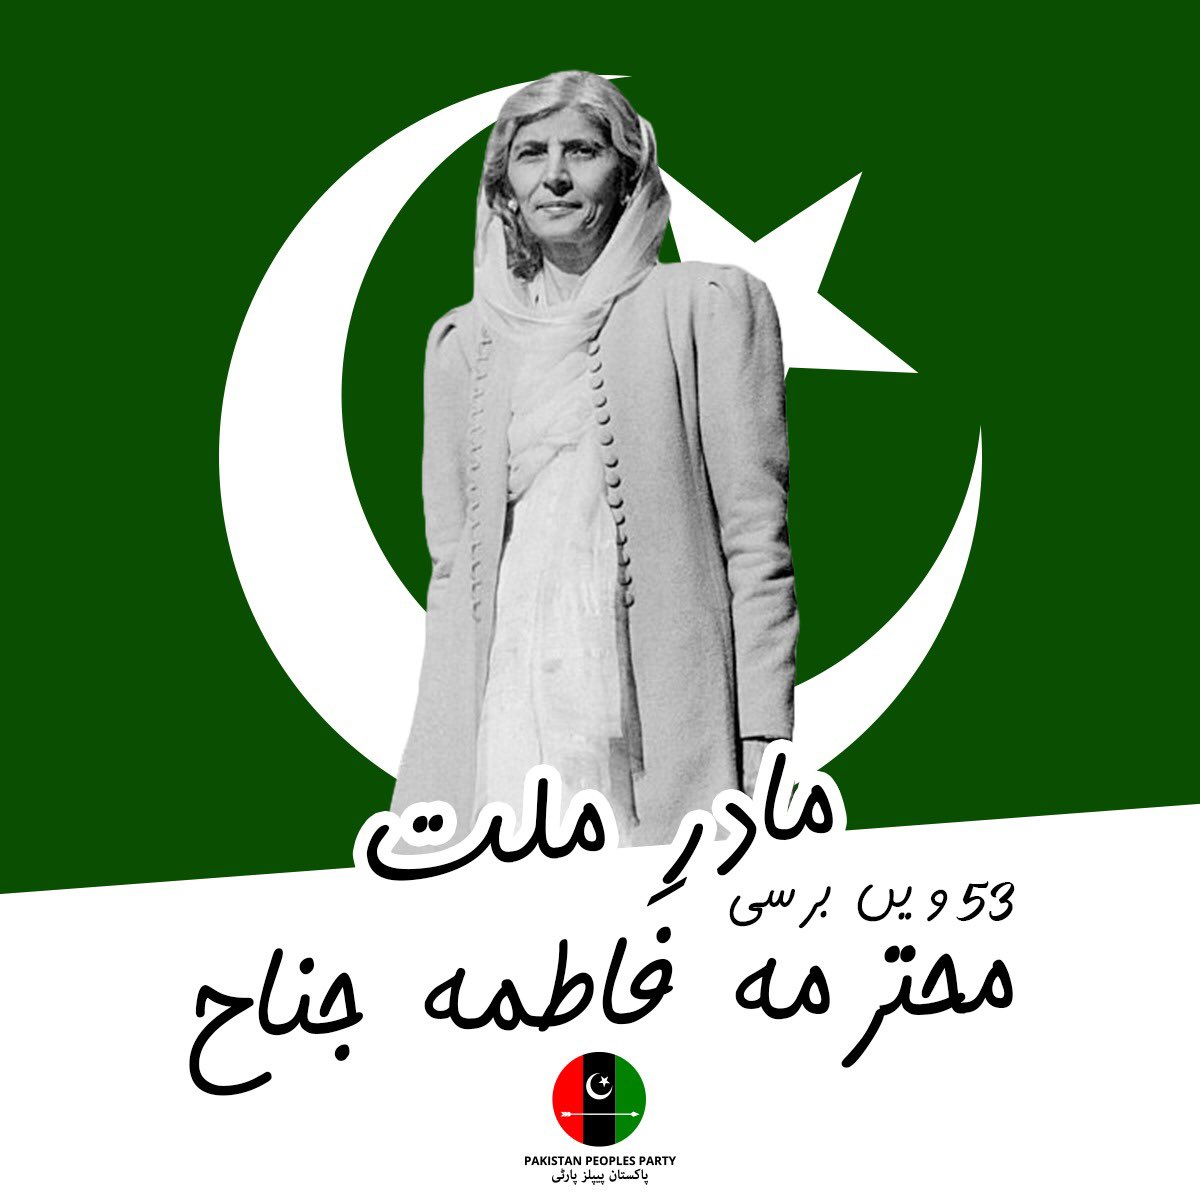 Death Anniversary Of Mother Of Nation #FatimaJinnah. She Workesd Day and Night With #QuaideAzam For the Establishment of Pakistan. We Always Miss U and Also Your Struggle For the Nation. 🇵🇰🇵🇰 #53AniversaryFatimaJinnah https://t.co/grE5TQURON